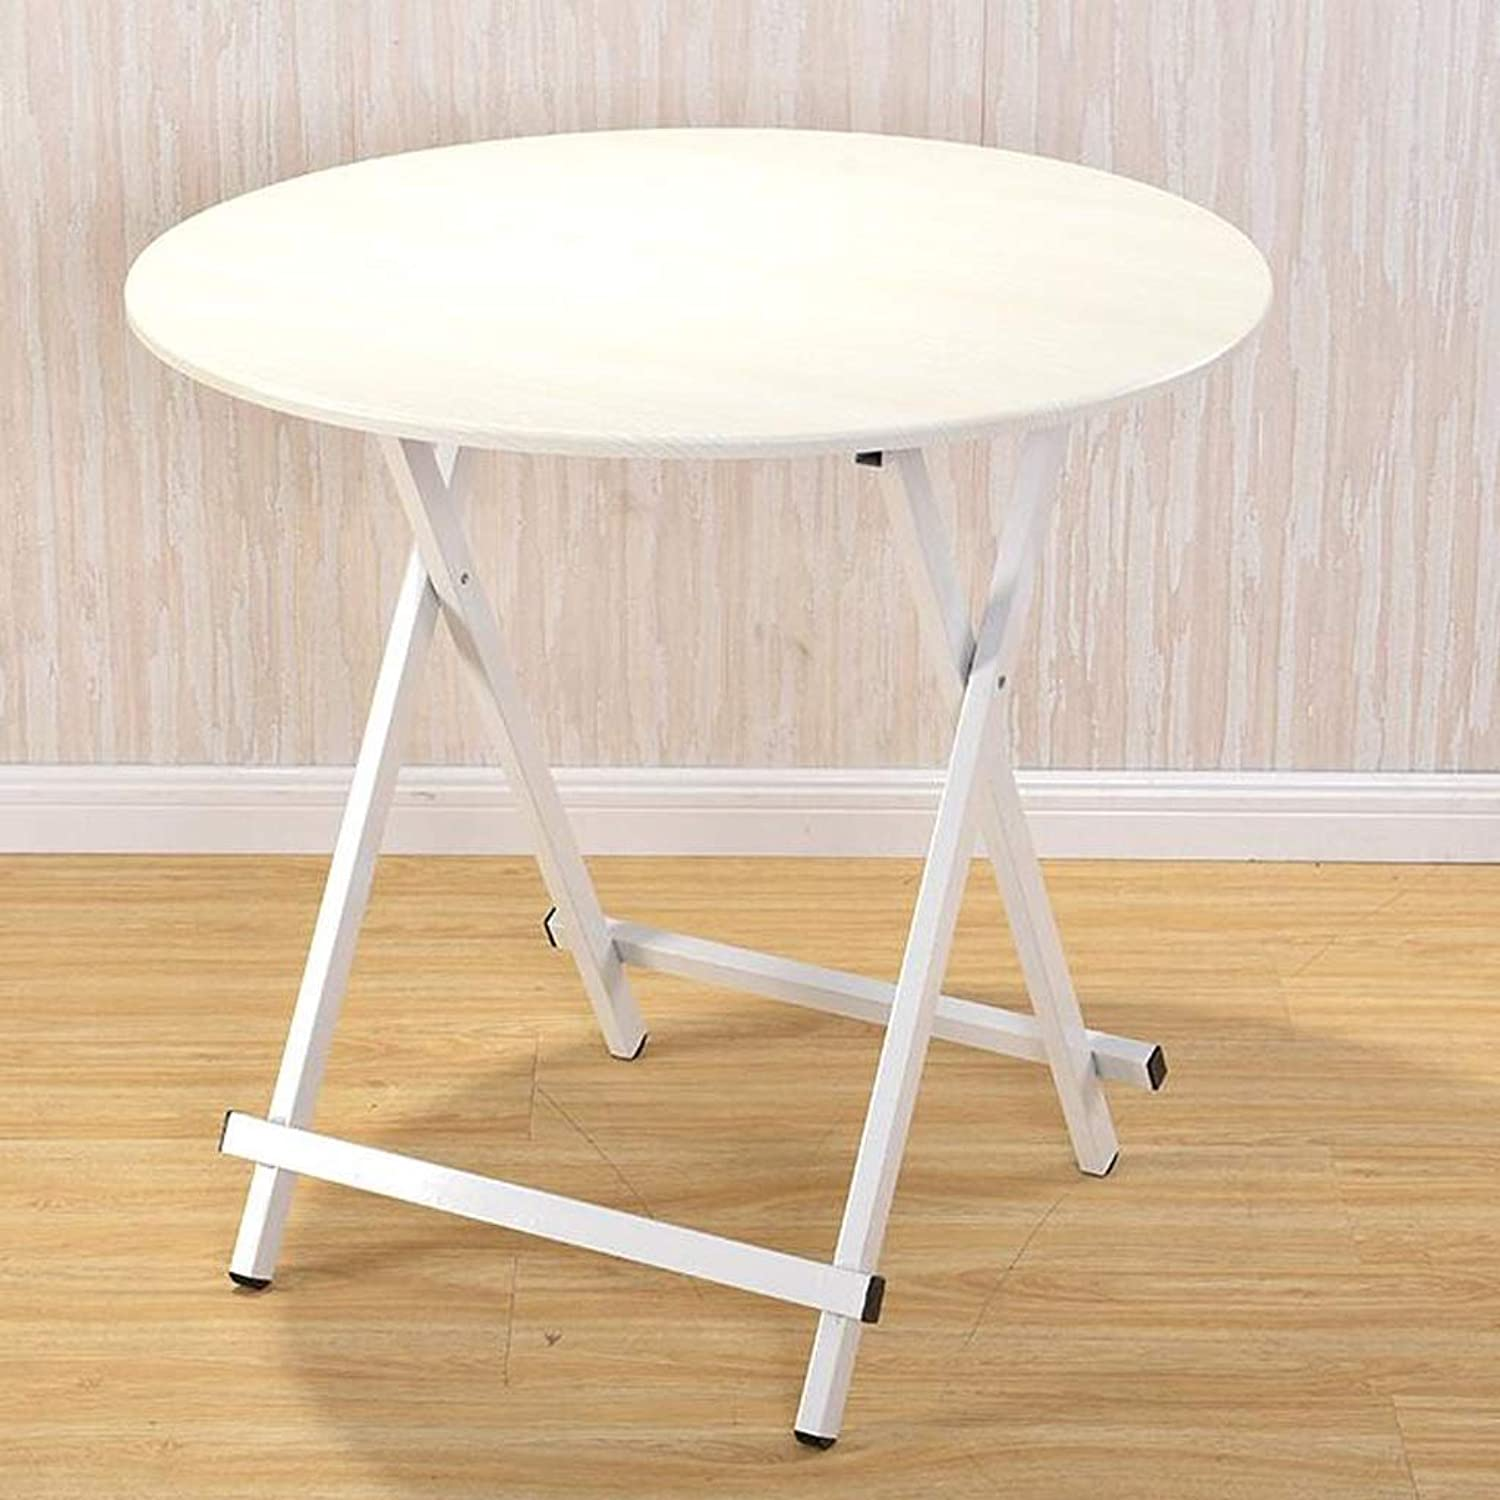 JSFQ Folding Table - Household Table - Small Portable Small Round Table - Balcony Table - A Variety of colors Available Folding Table (color   D)